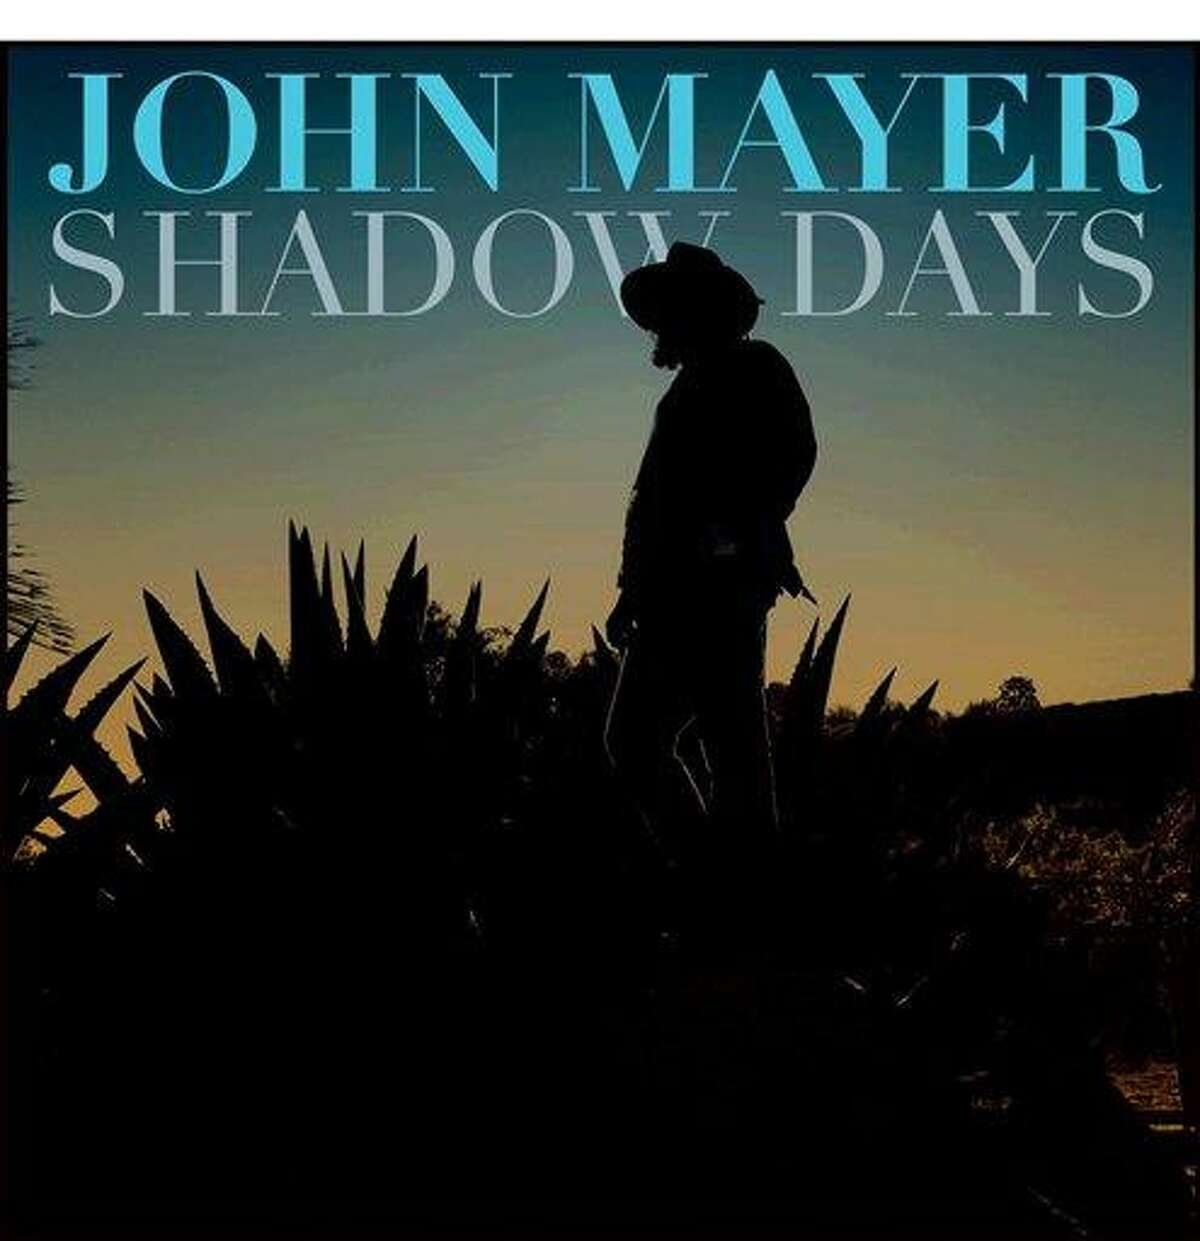 """John Mayer Launches Spring US Tour - April 9-May 6 - New Single """"Shadow Days"""" Out Now. (PRNewsFoto/Columbia Records)"""